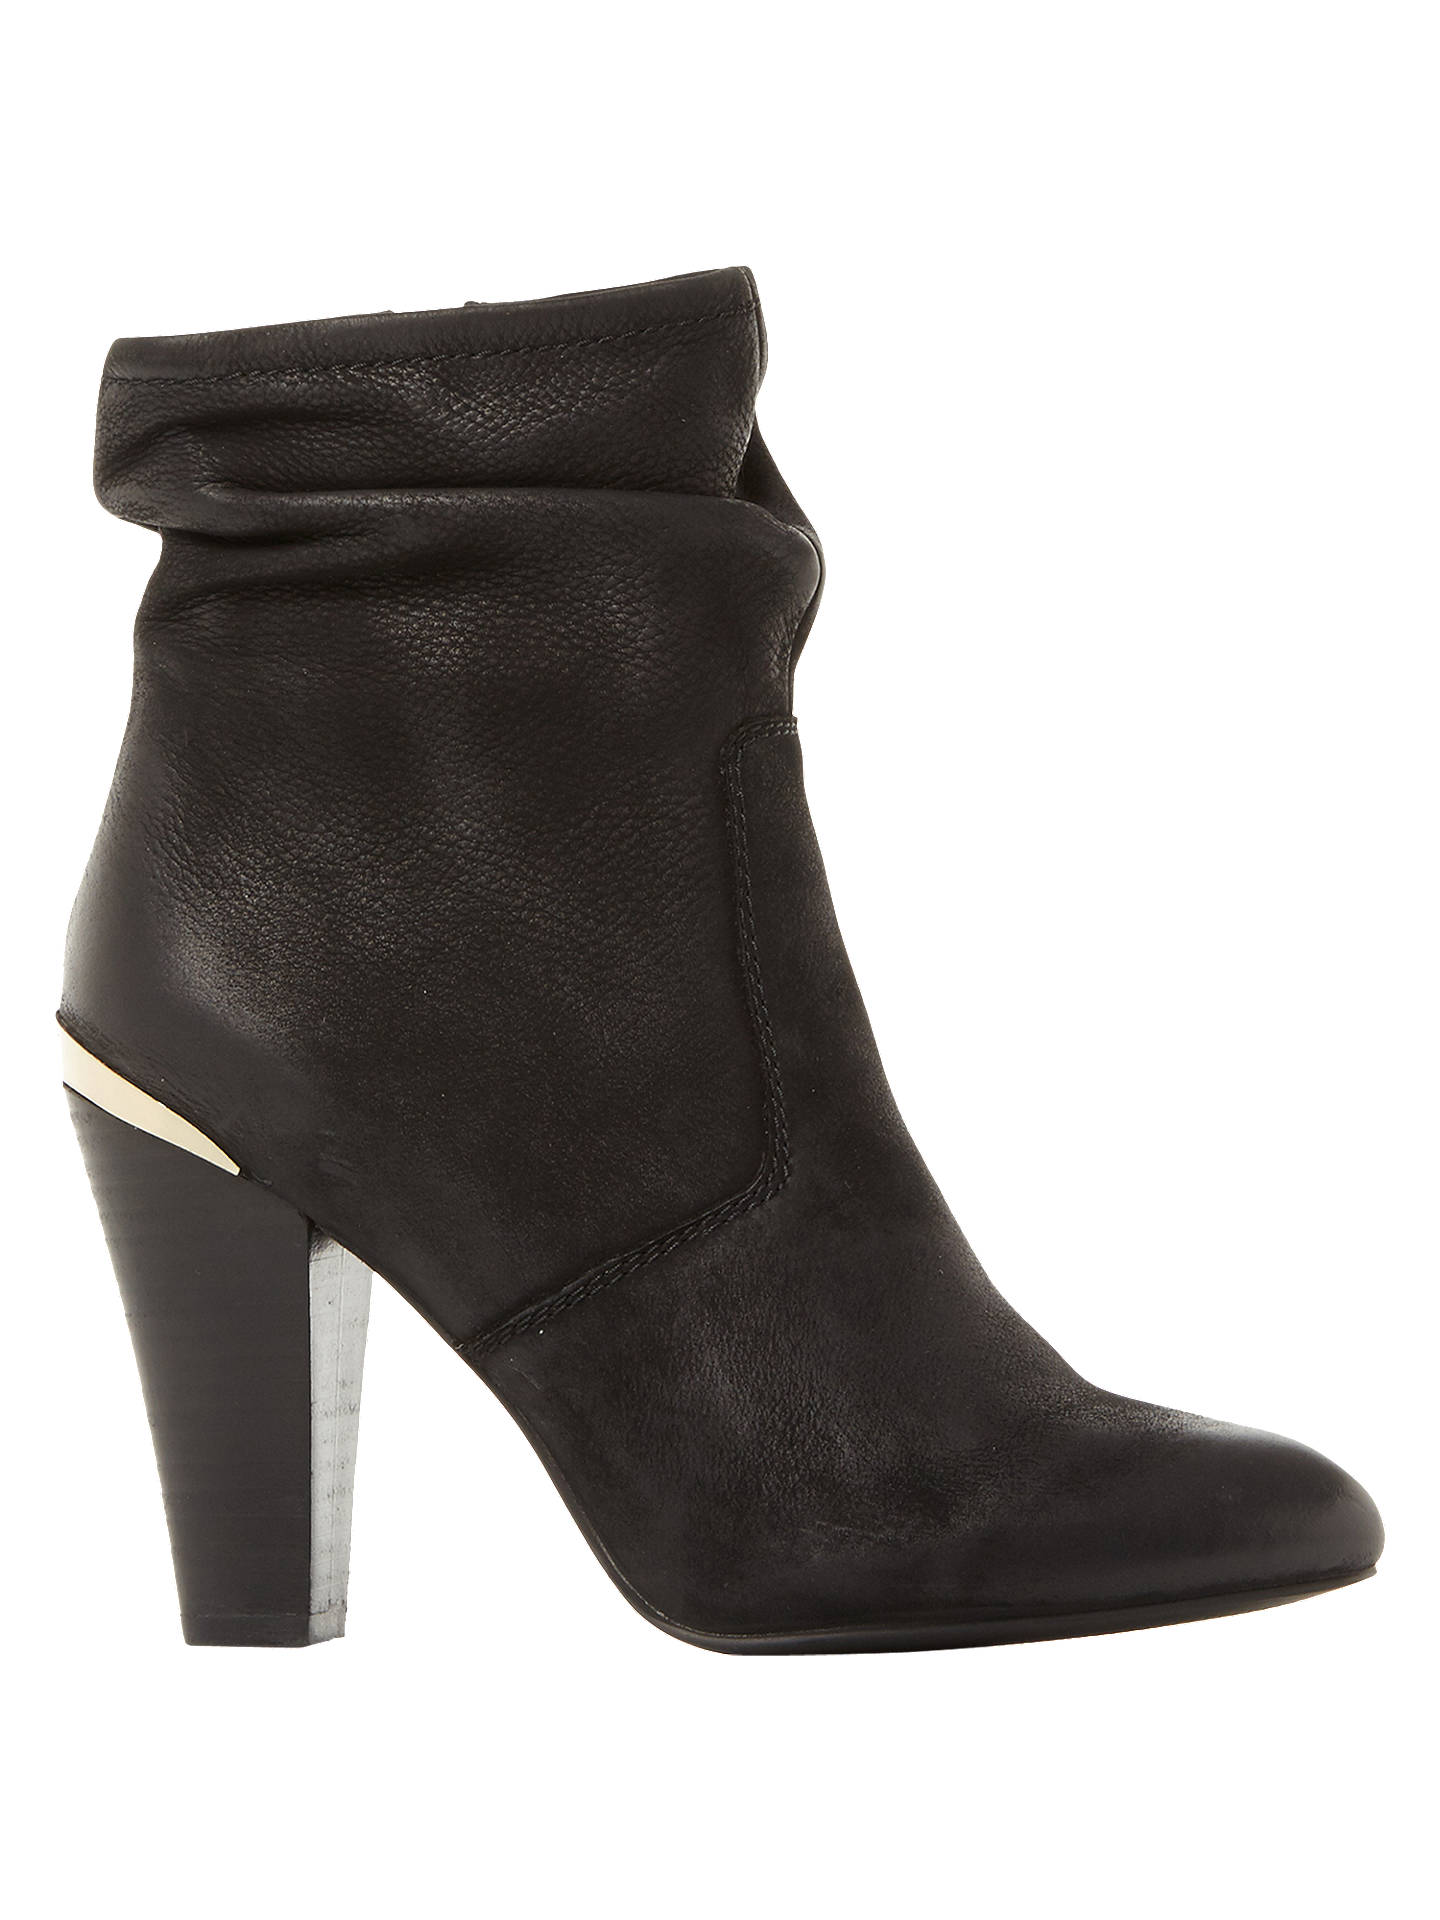 Buy Steve Madden Wannabyy High Cone Heel Ankle Boots, Black Leather, 3 Online at johnlewis.com